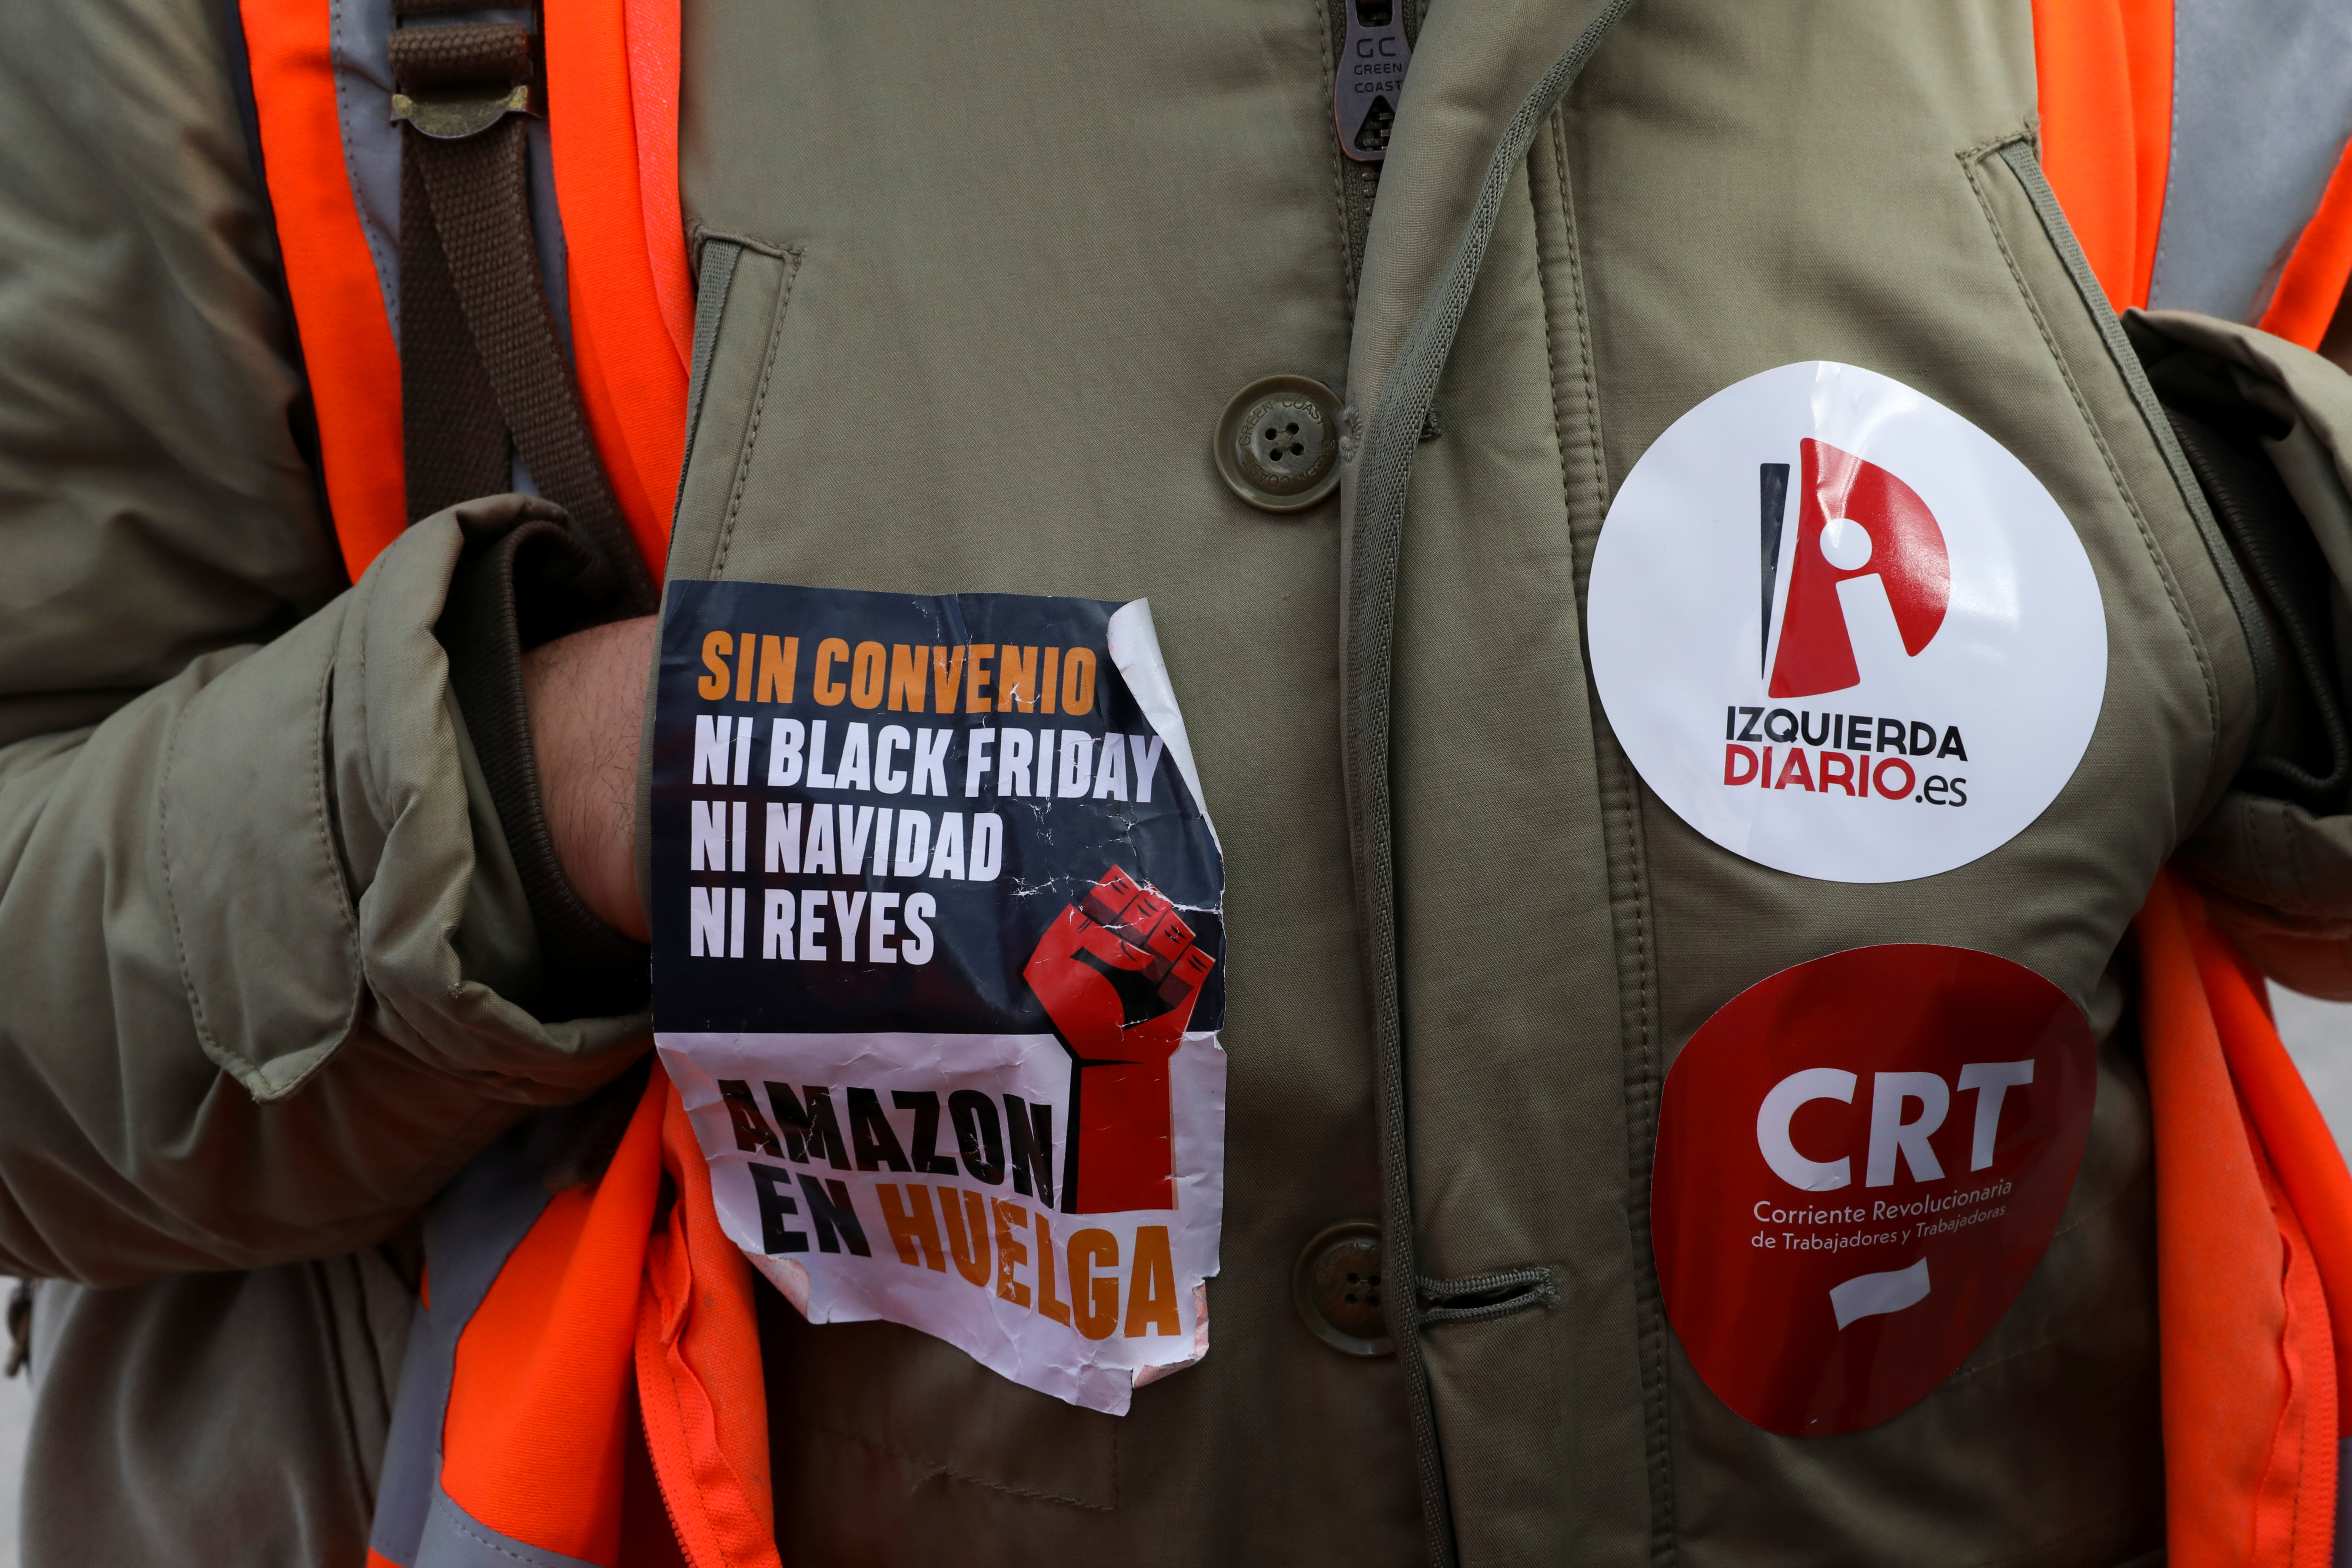 A picket wears stickers related to the strike outside the entrance of an Amazon fulfillment centre in San Fernando de Henares near Madrid, Spain, November 23, 2018. REUTERS/Susana Vera